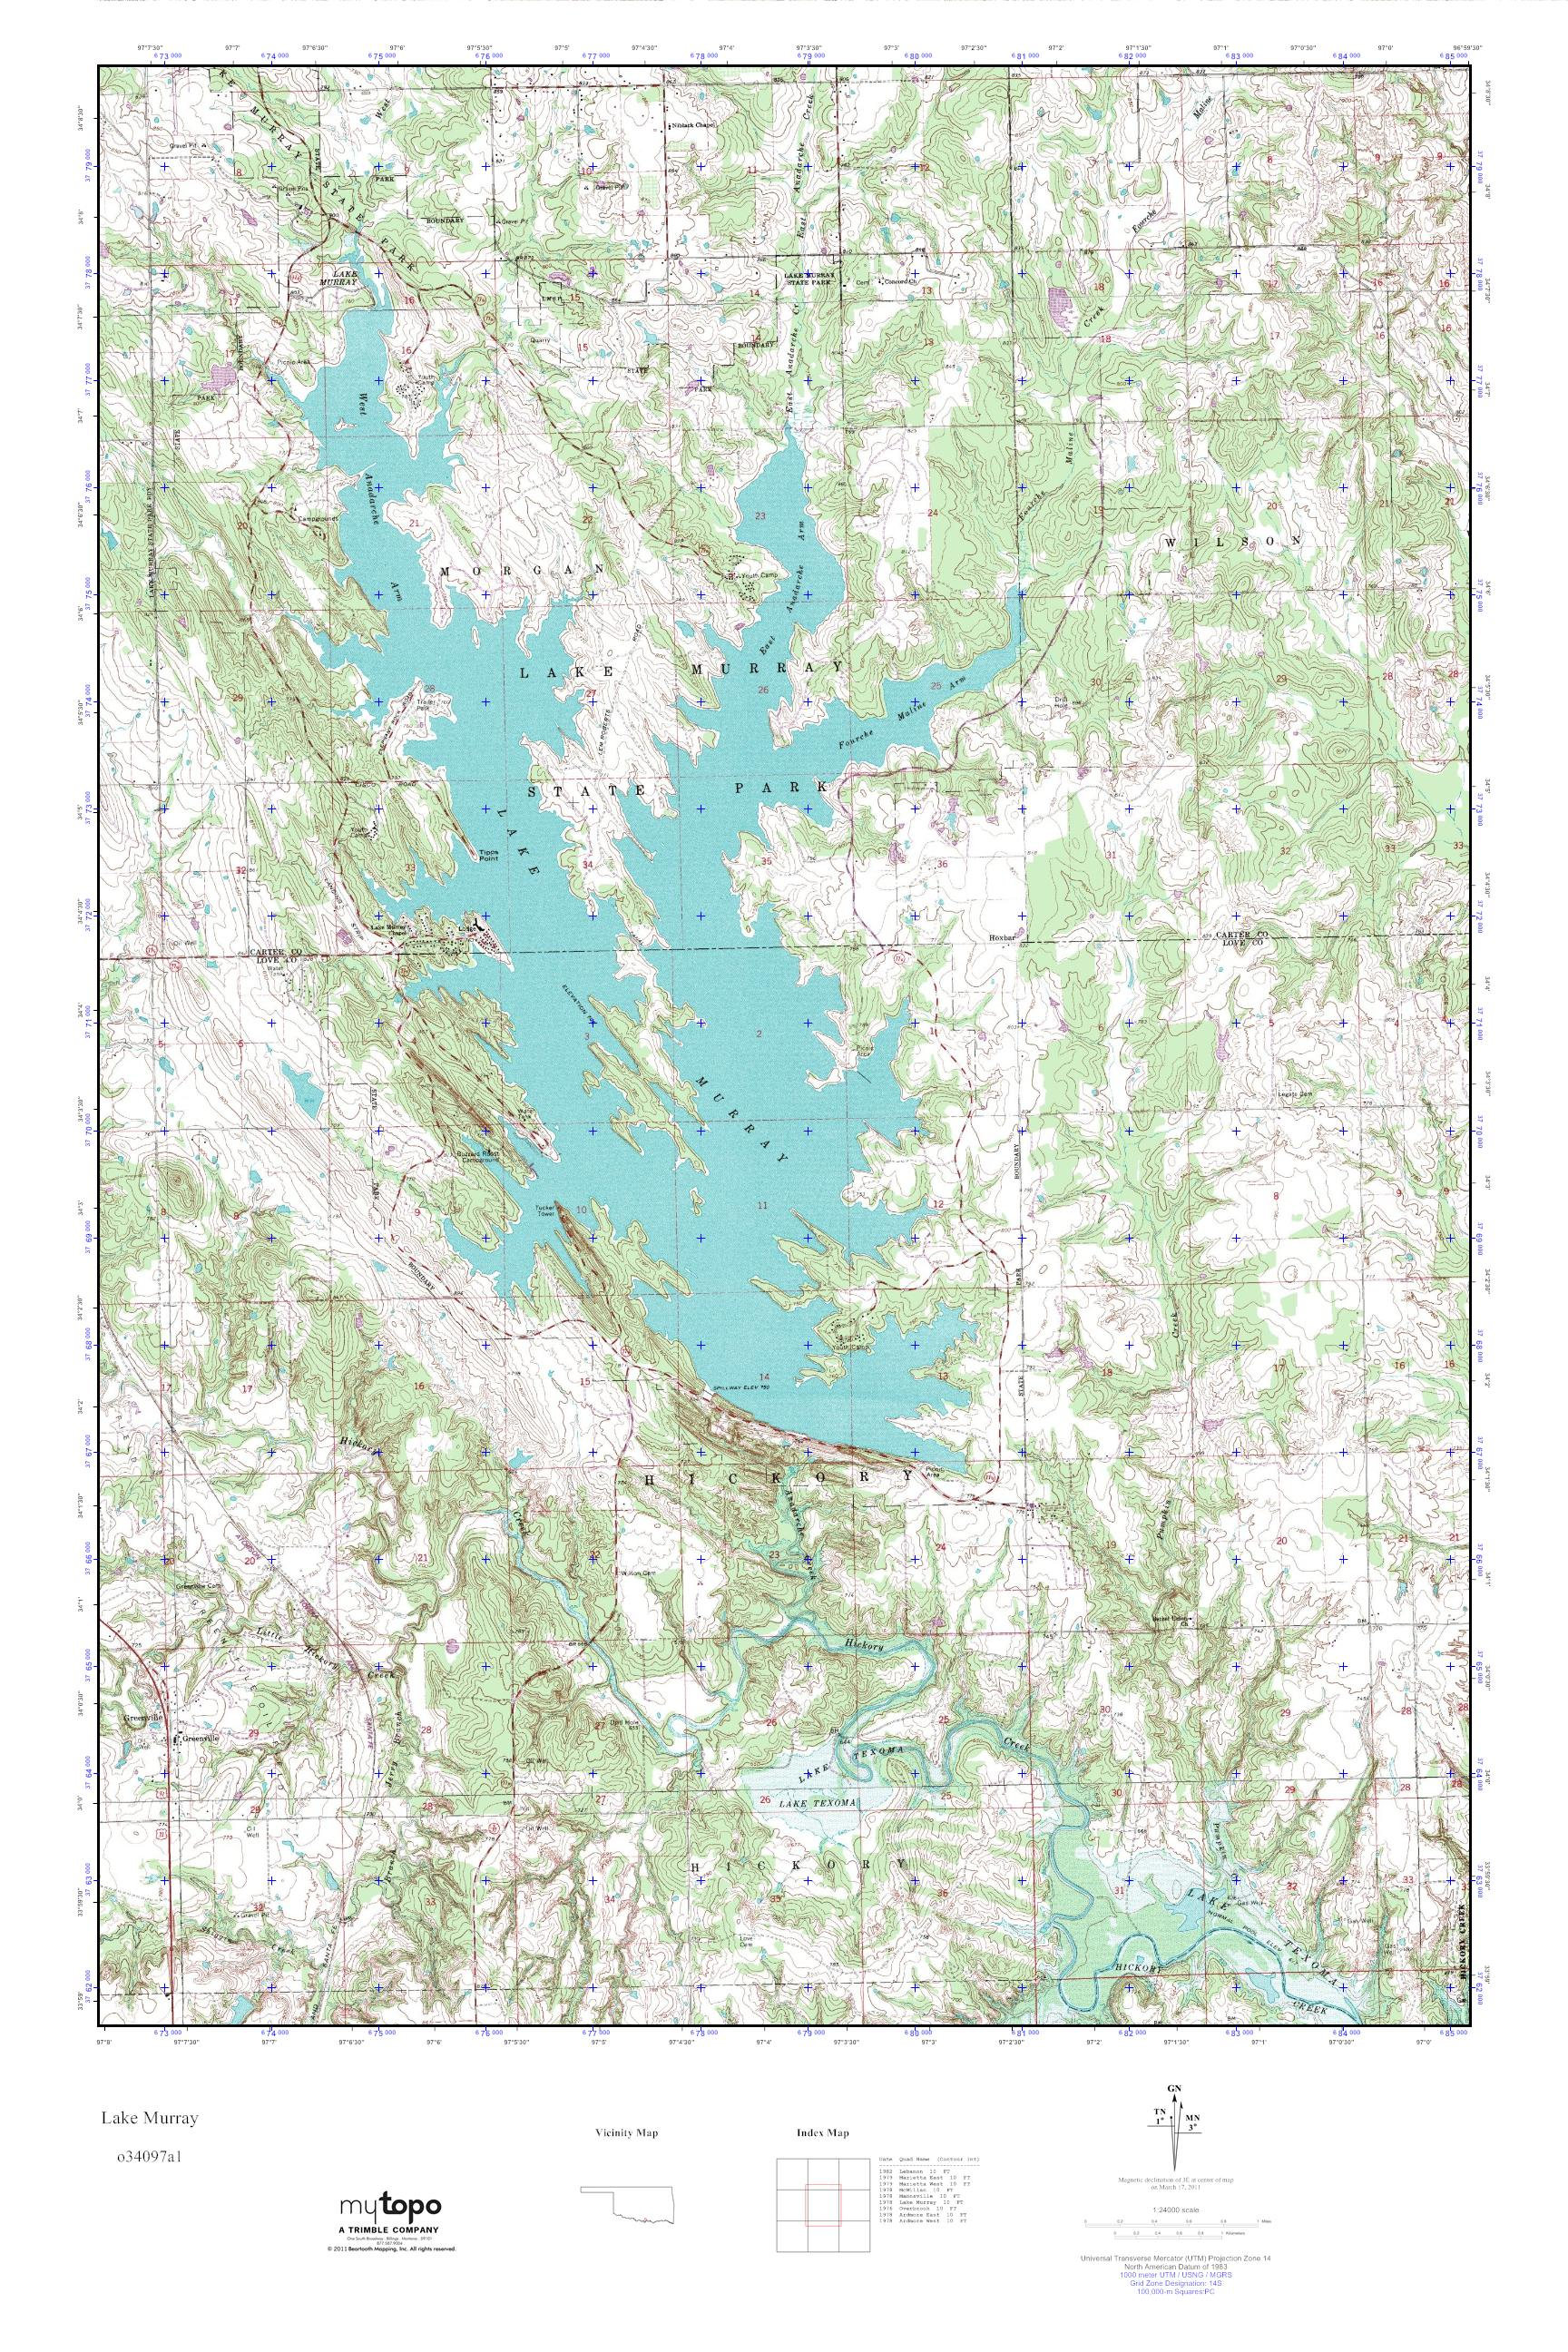 MyTopo Lake Murray, Oklahoma USGS Quad Topo Map